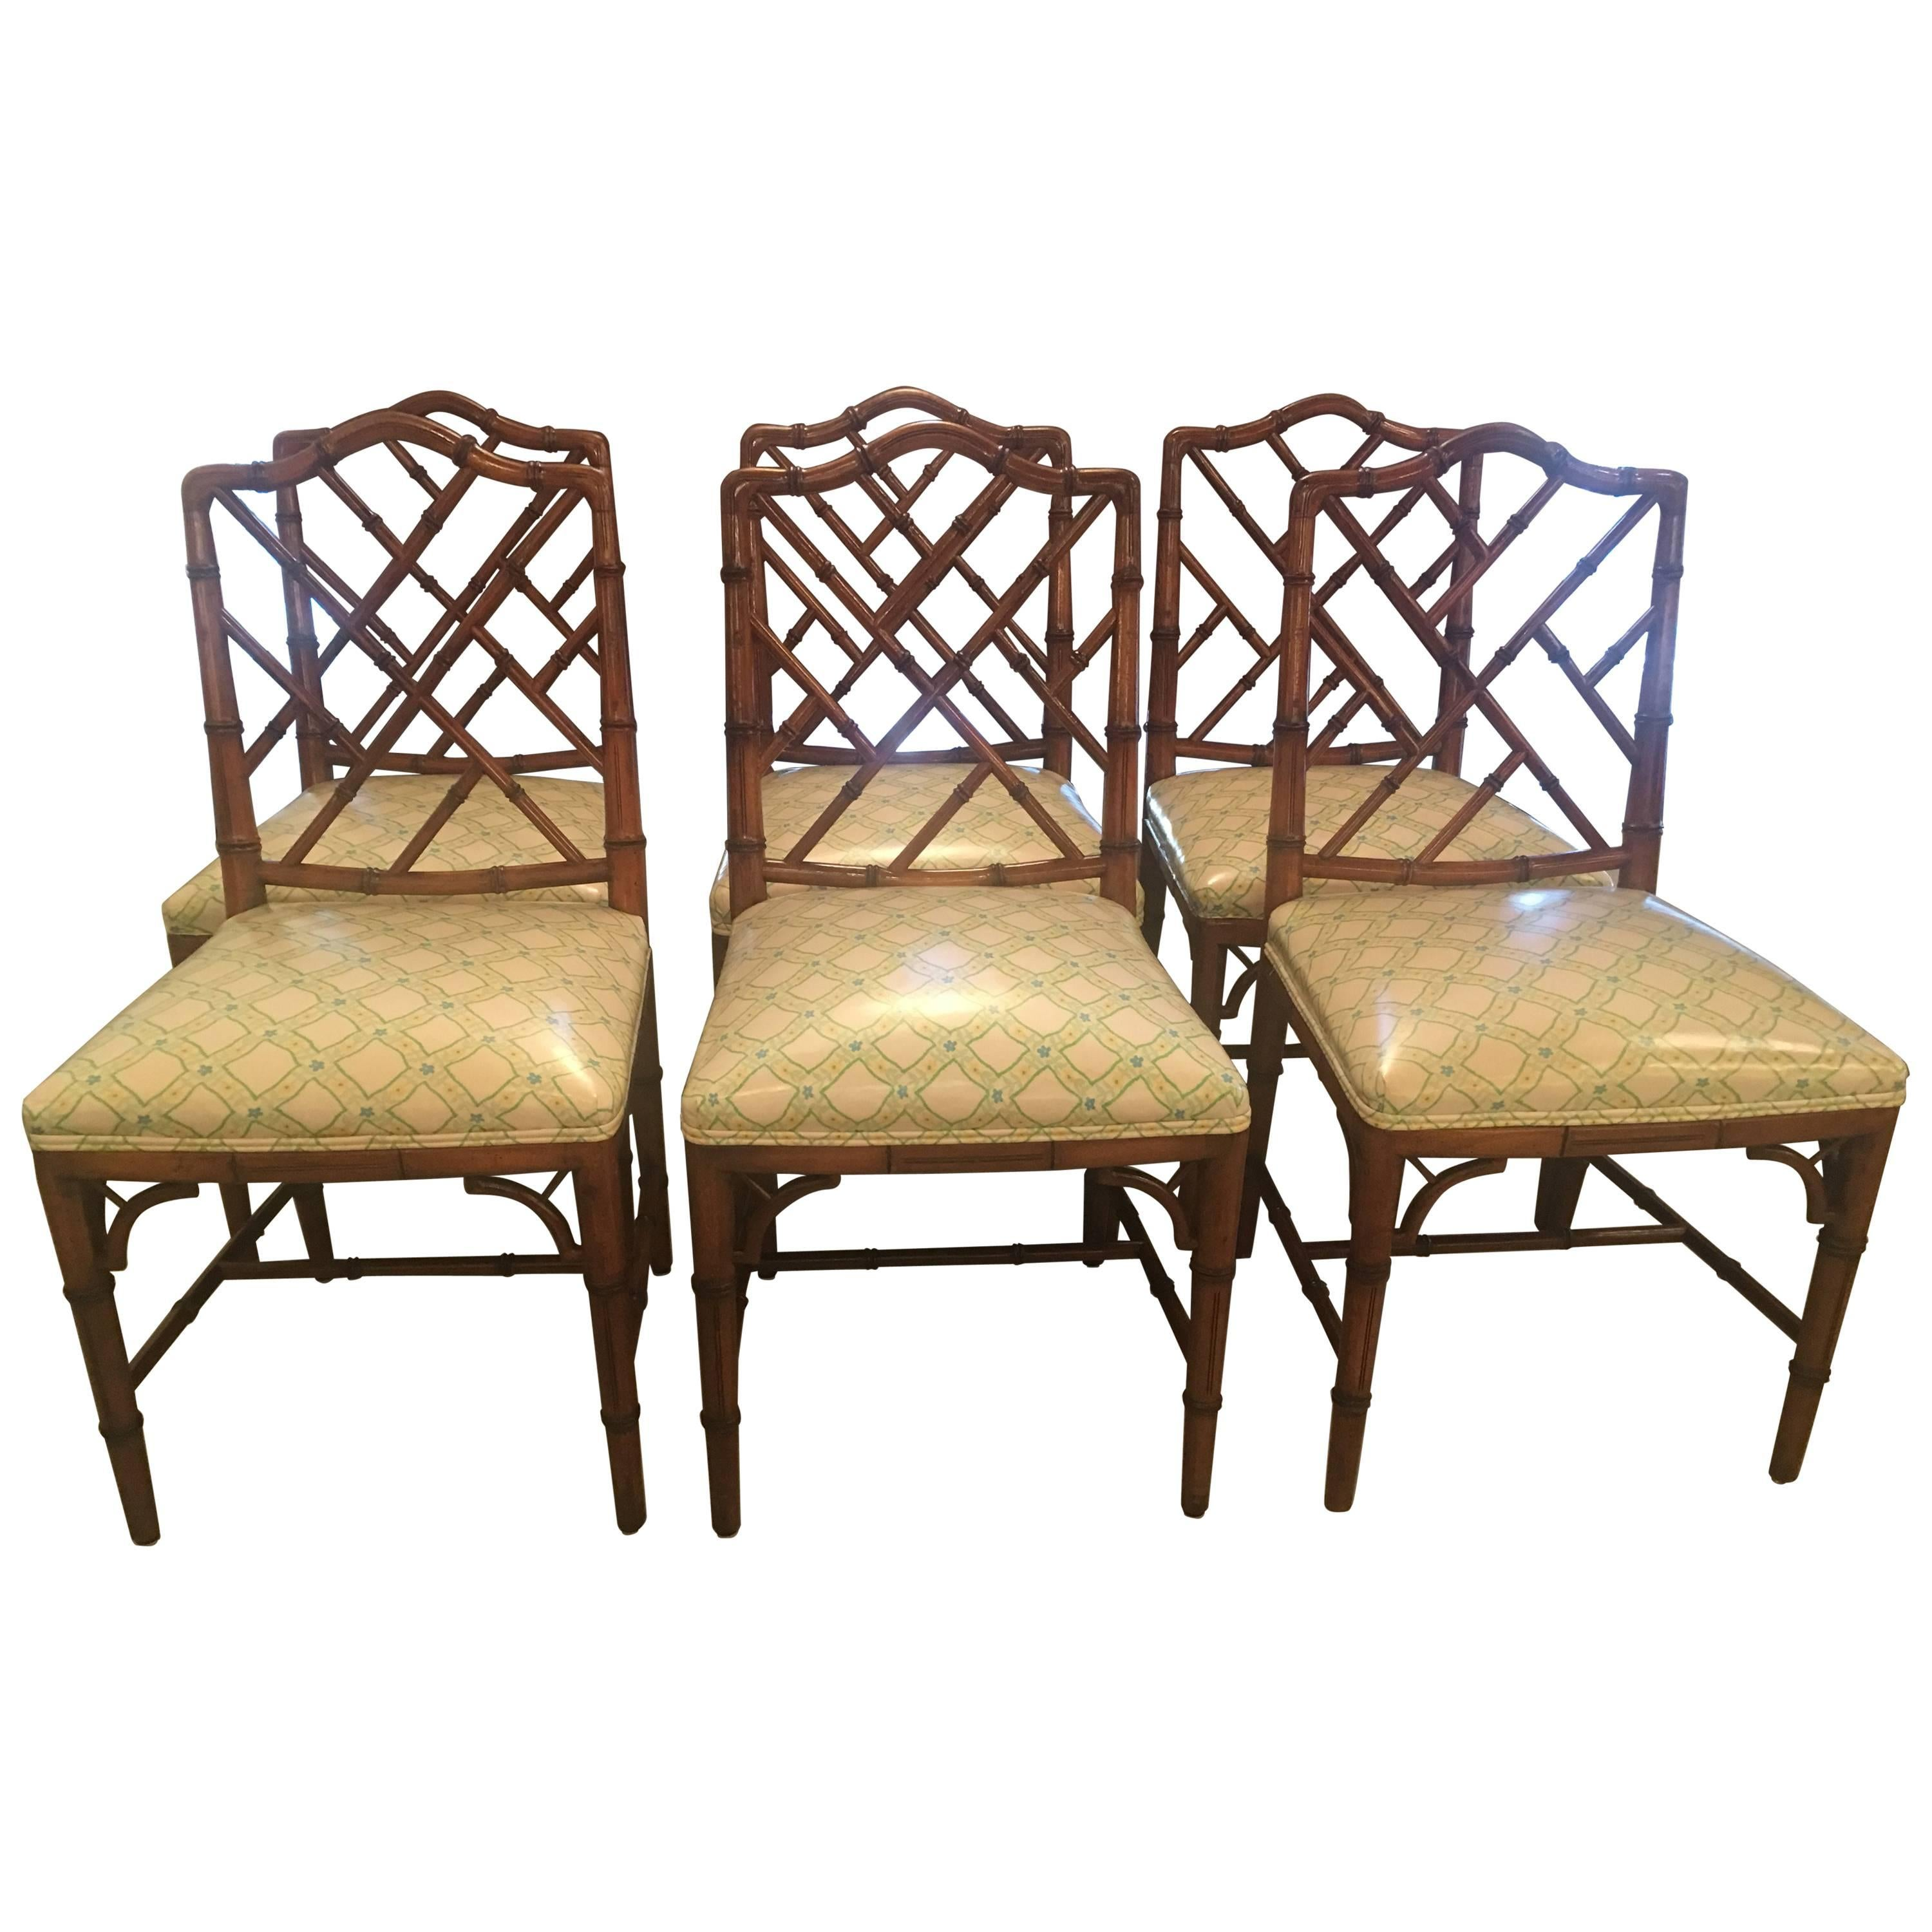 Century Furniture Furniture - 77 For Sale at 1stdibs